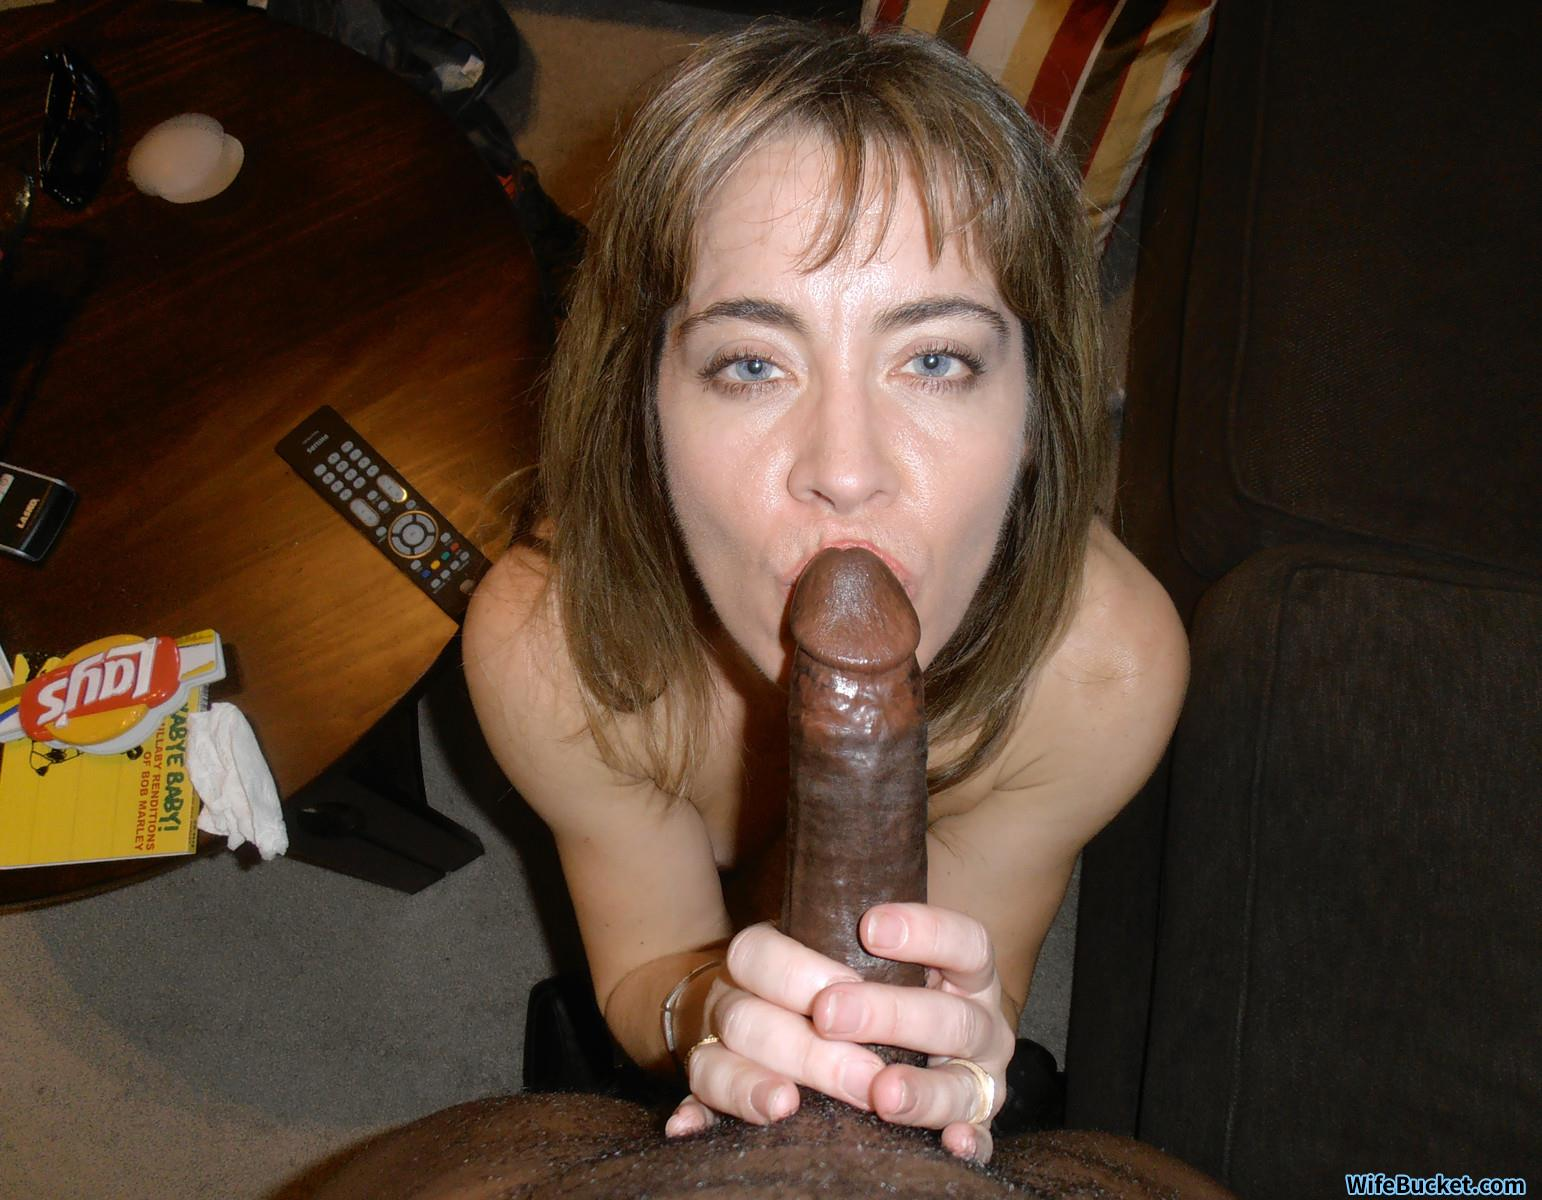 Cuckold archive busty milf pleasuring bbc bull 6